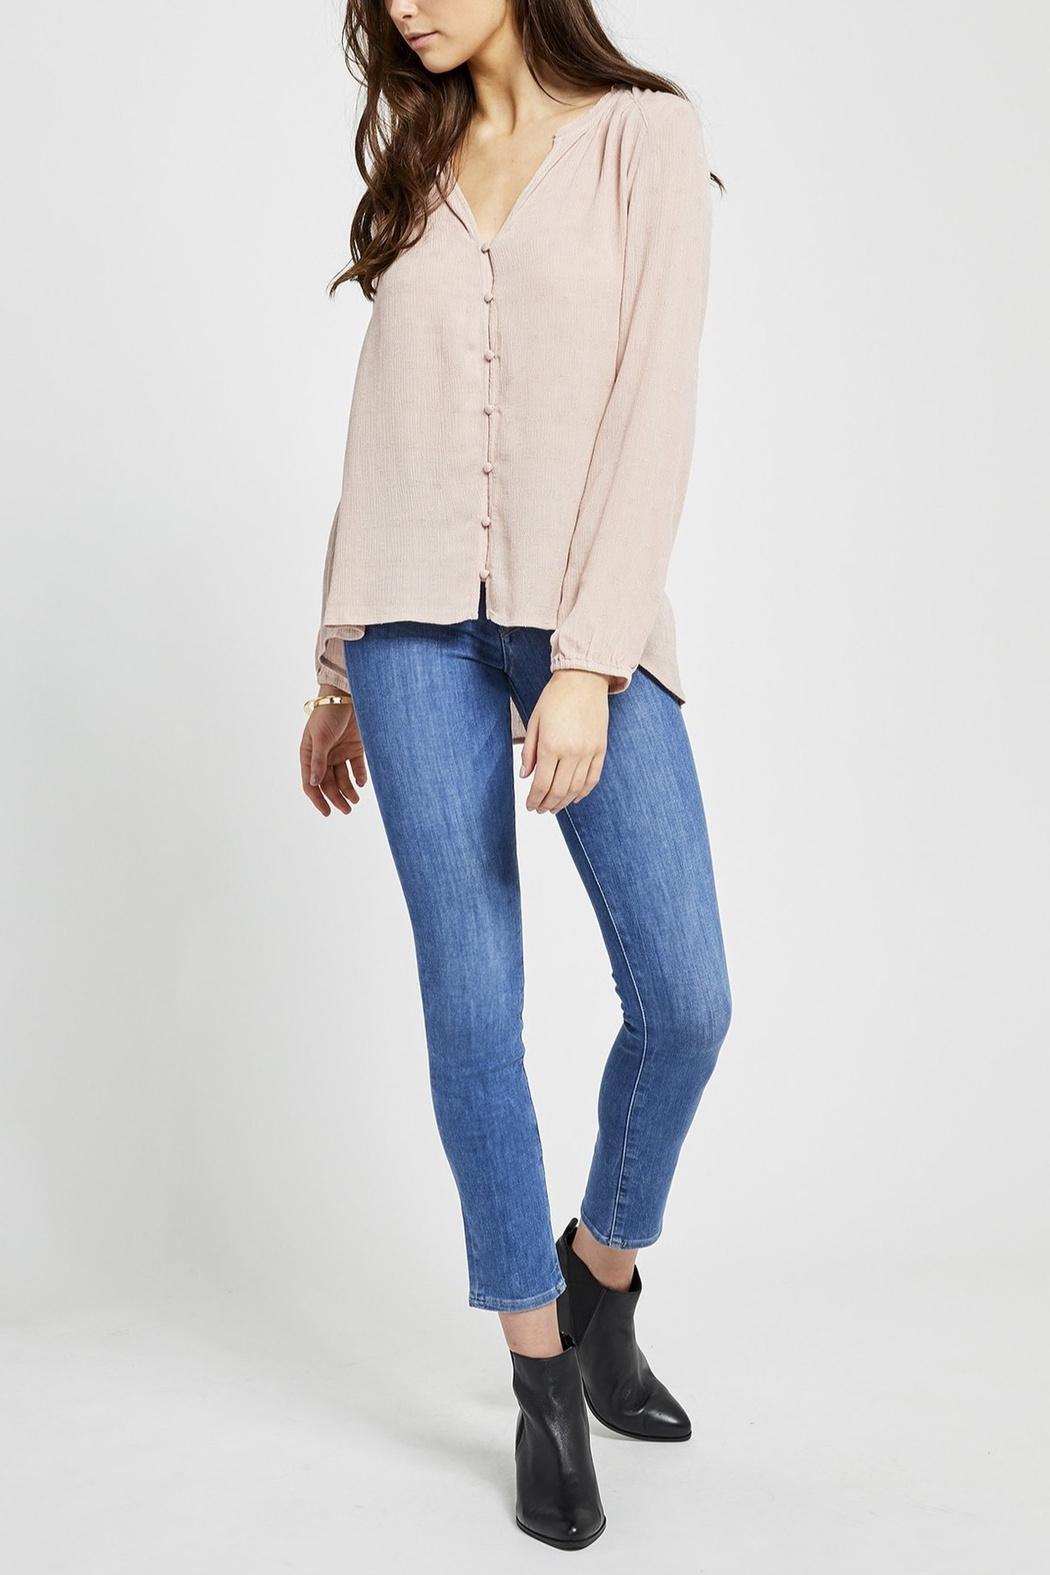 Gentle Fawn Emma Button Blouse - Front Cropped Image